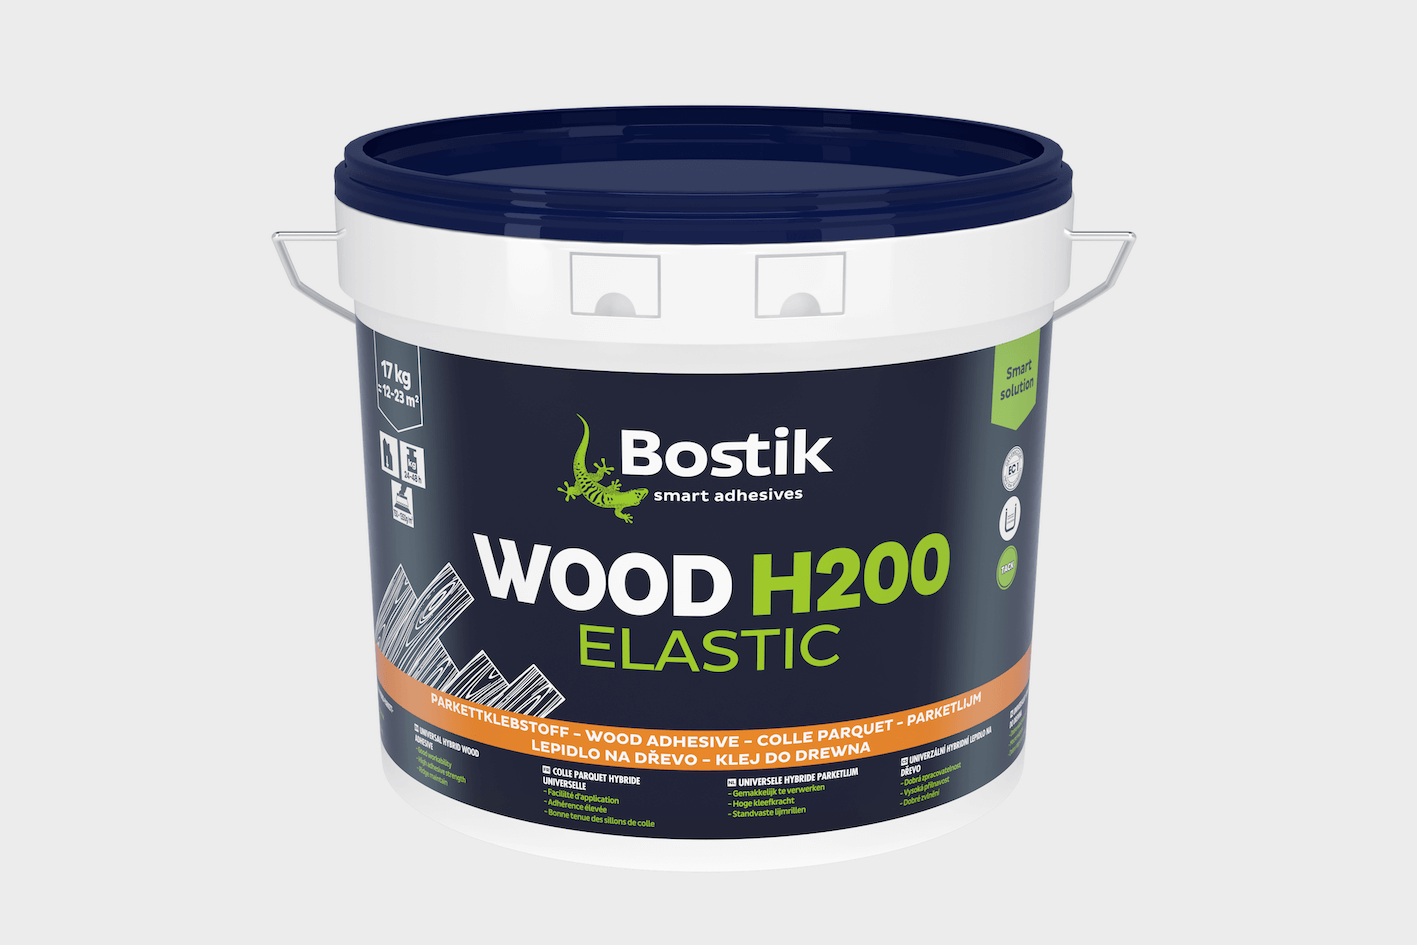 INTRODUCING WOOD H200 ELASTIC – our hybrid adhesive for wood flooring